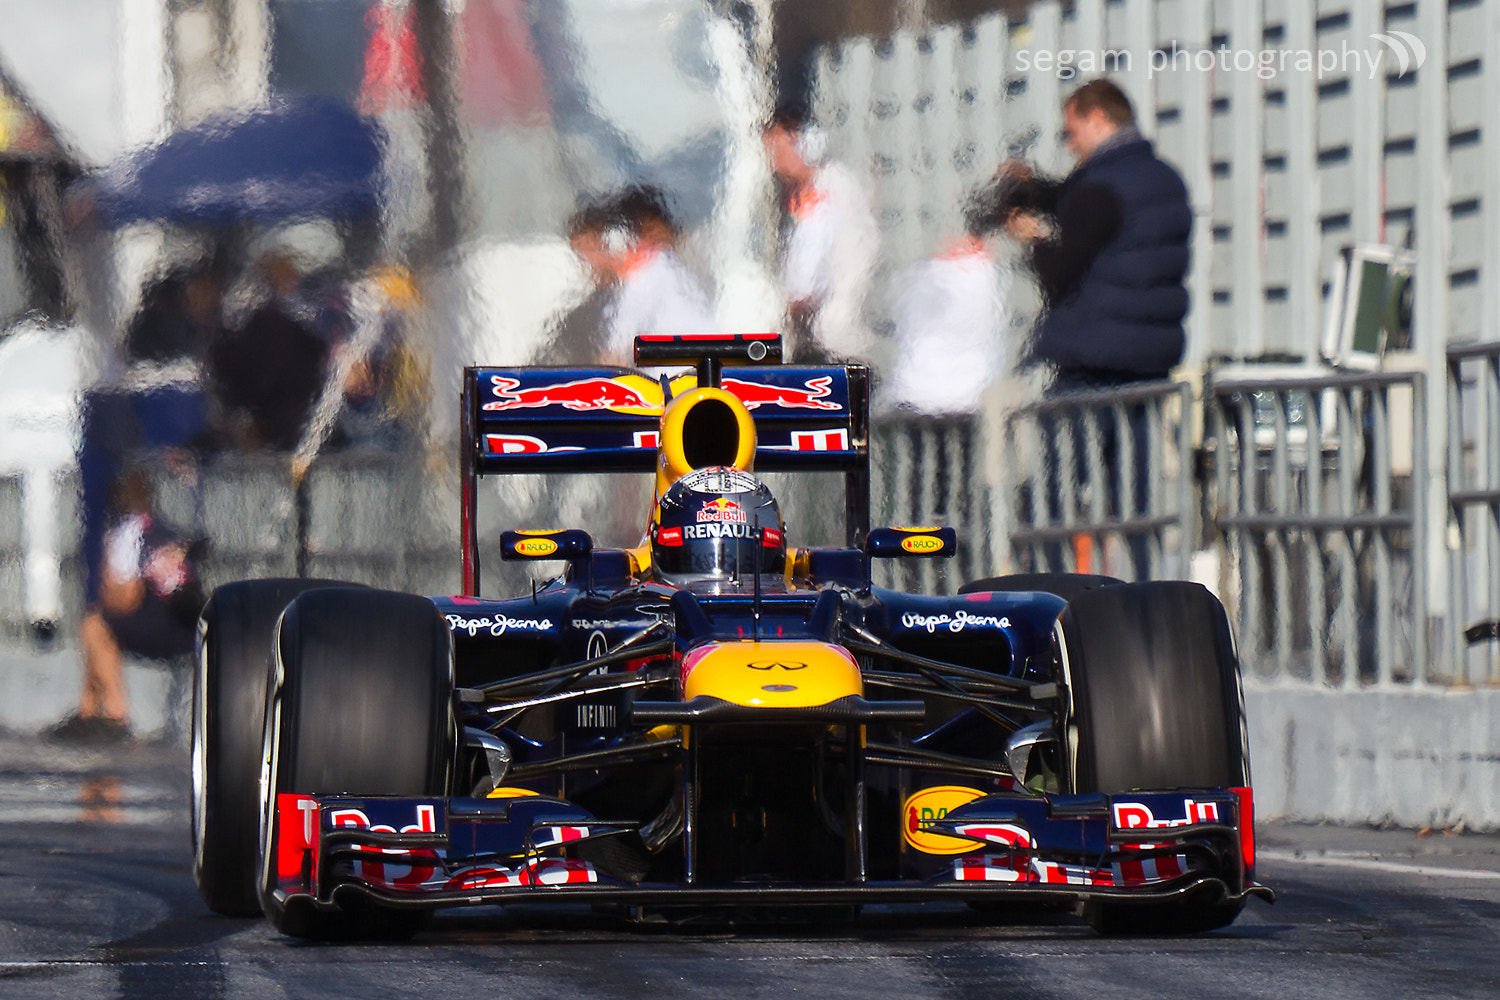 Photograph Sebastian Vettel - RedBull RB8 by Sergio Garcia on 500px